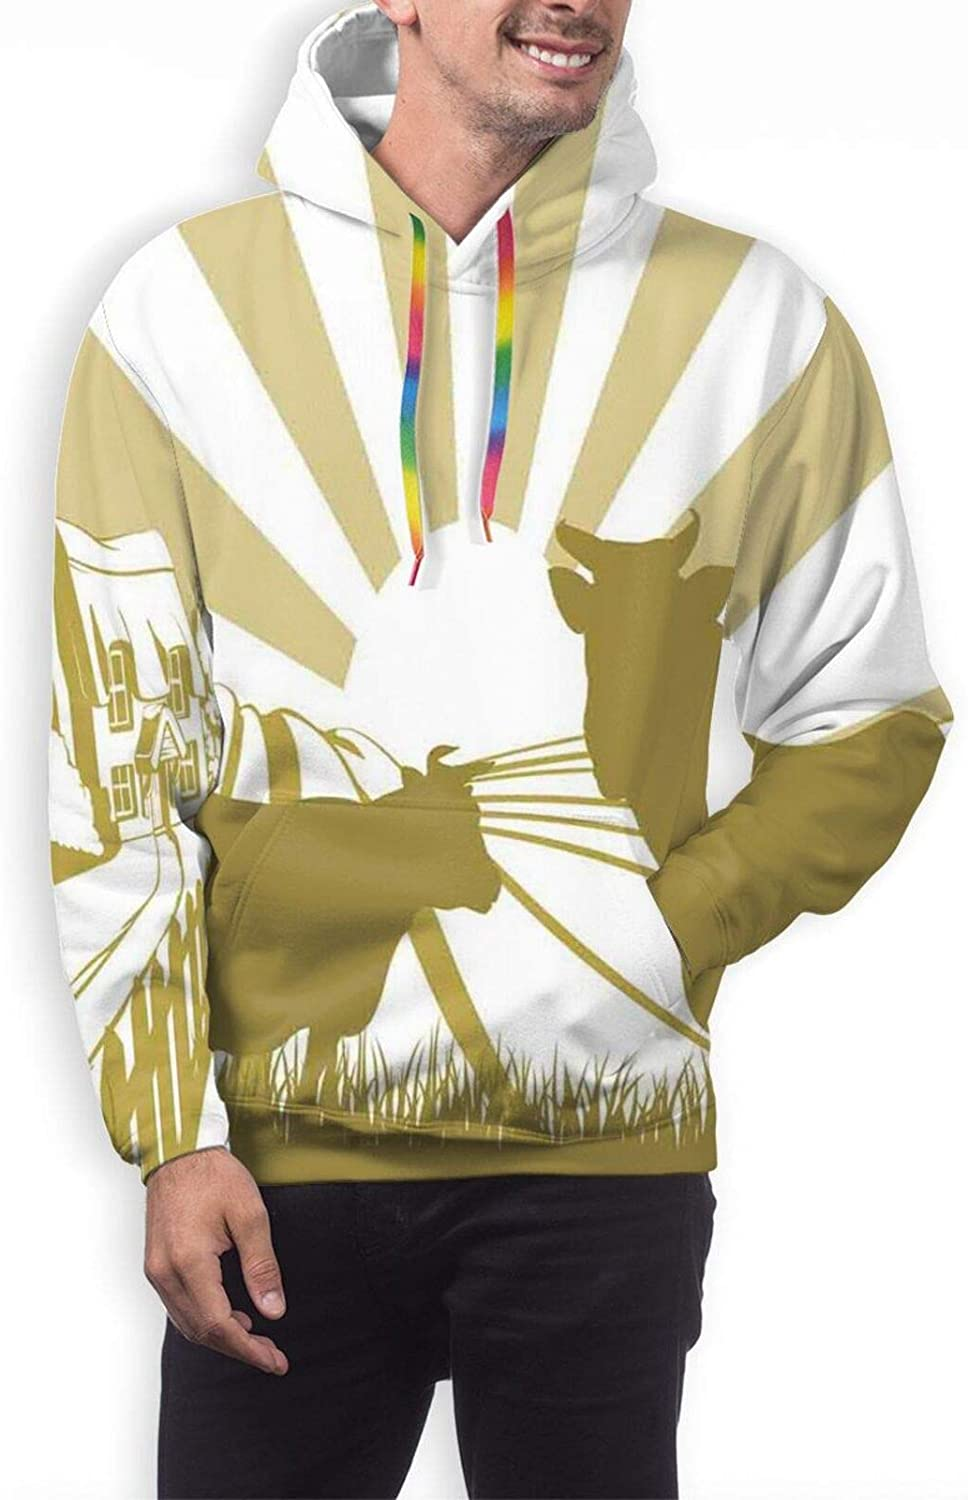 Men's Hoodies Sweatshirts,Silhouette Floral Pattern with Colored Cartoon Bees Flying in Botany Nature